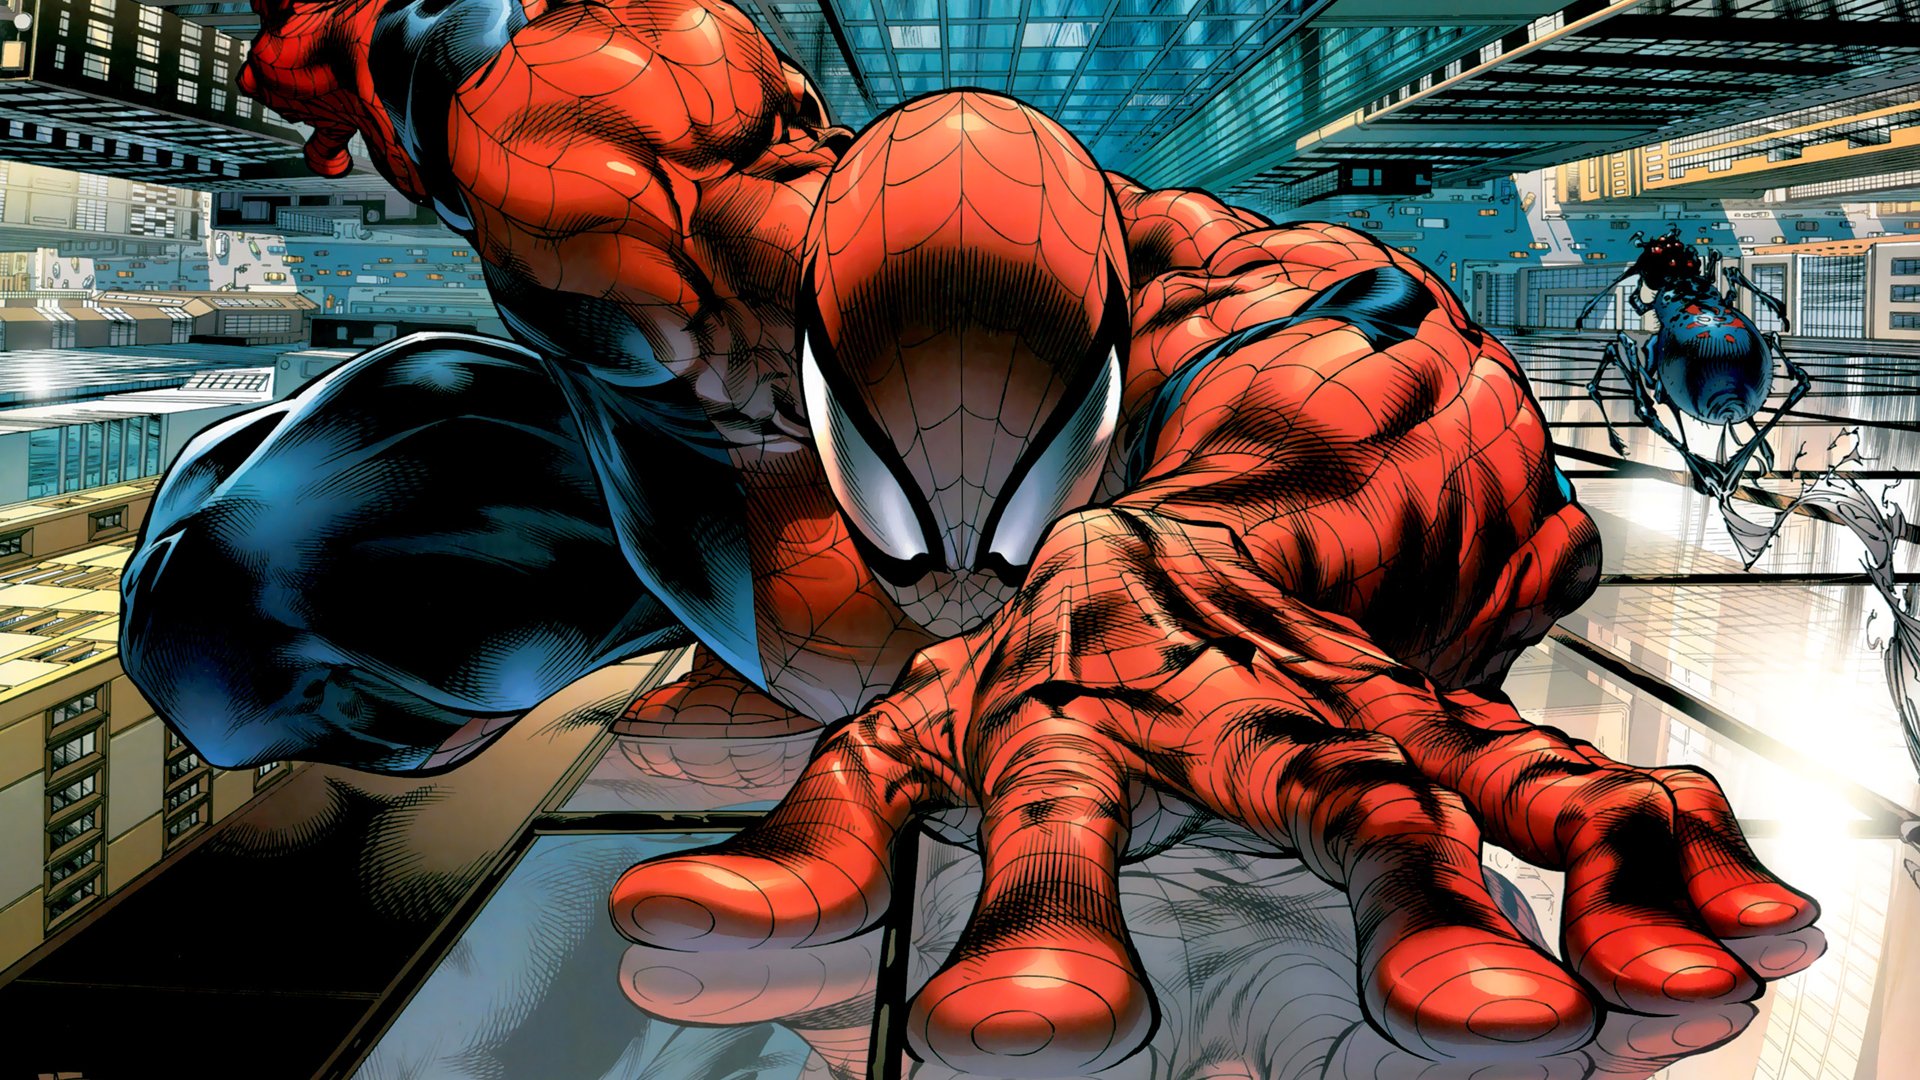 Download Comics Spider man Wallpaper 1920x1080 Wallpoper 259604 1920x1080